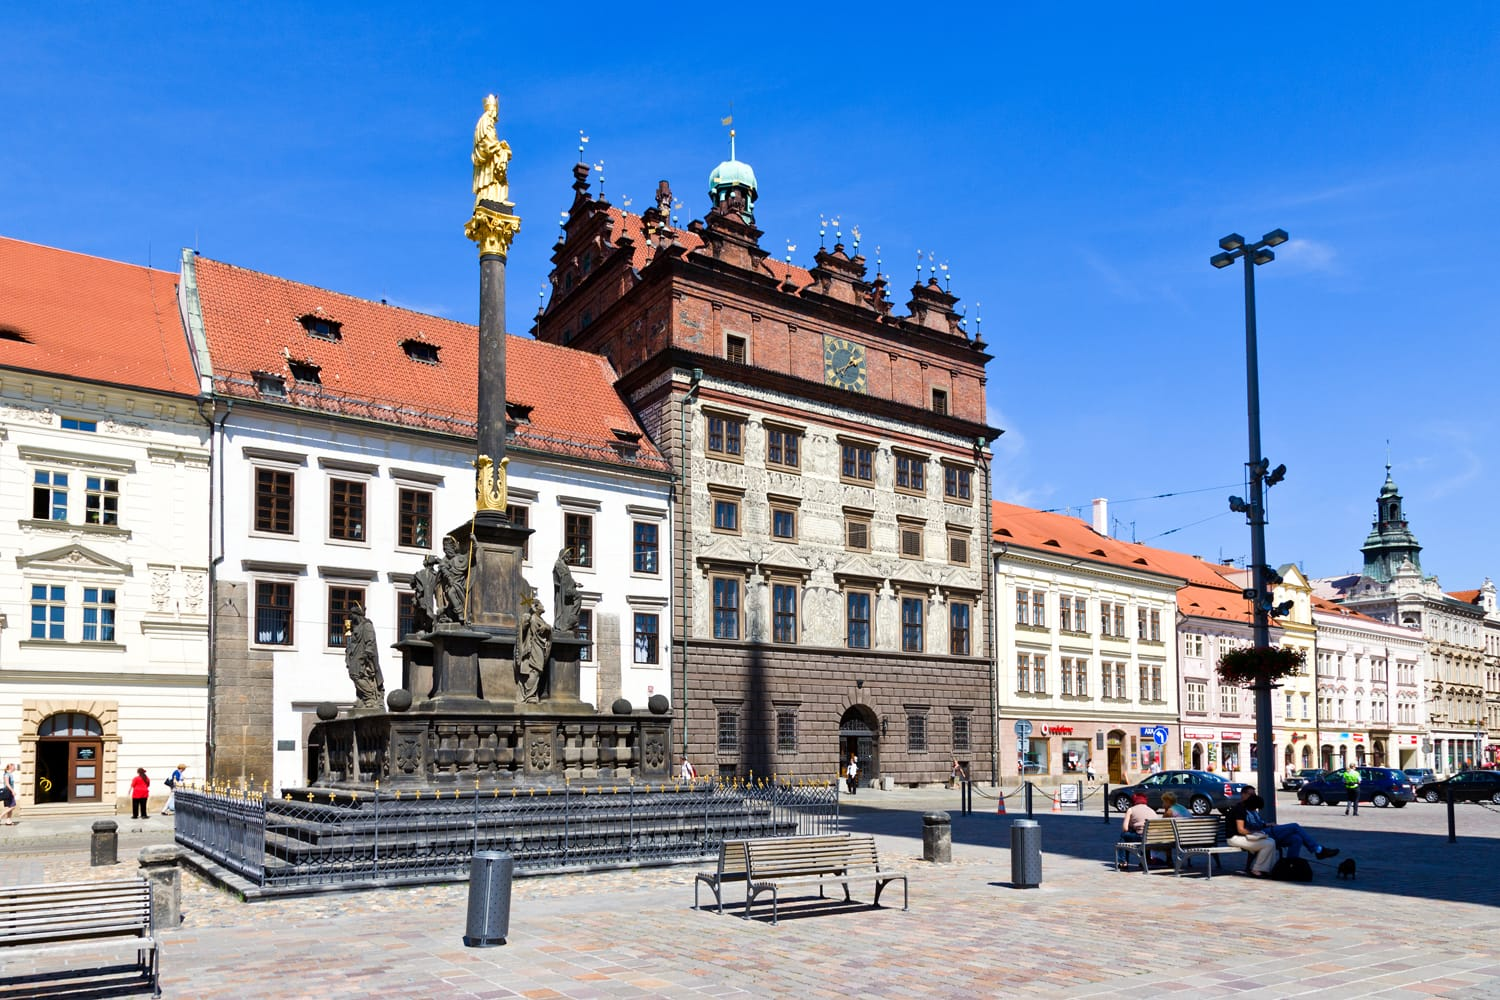 Town Square in Pilsen in Czech Republic